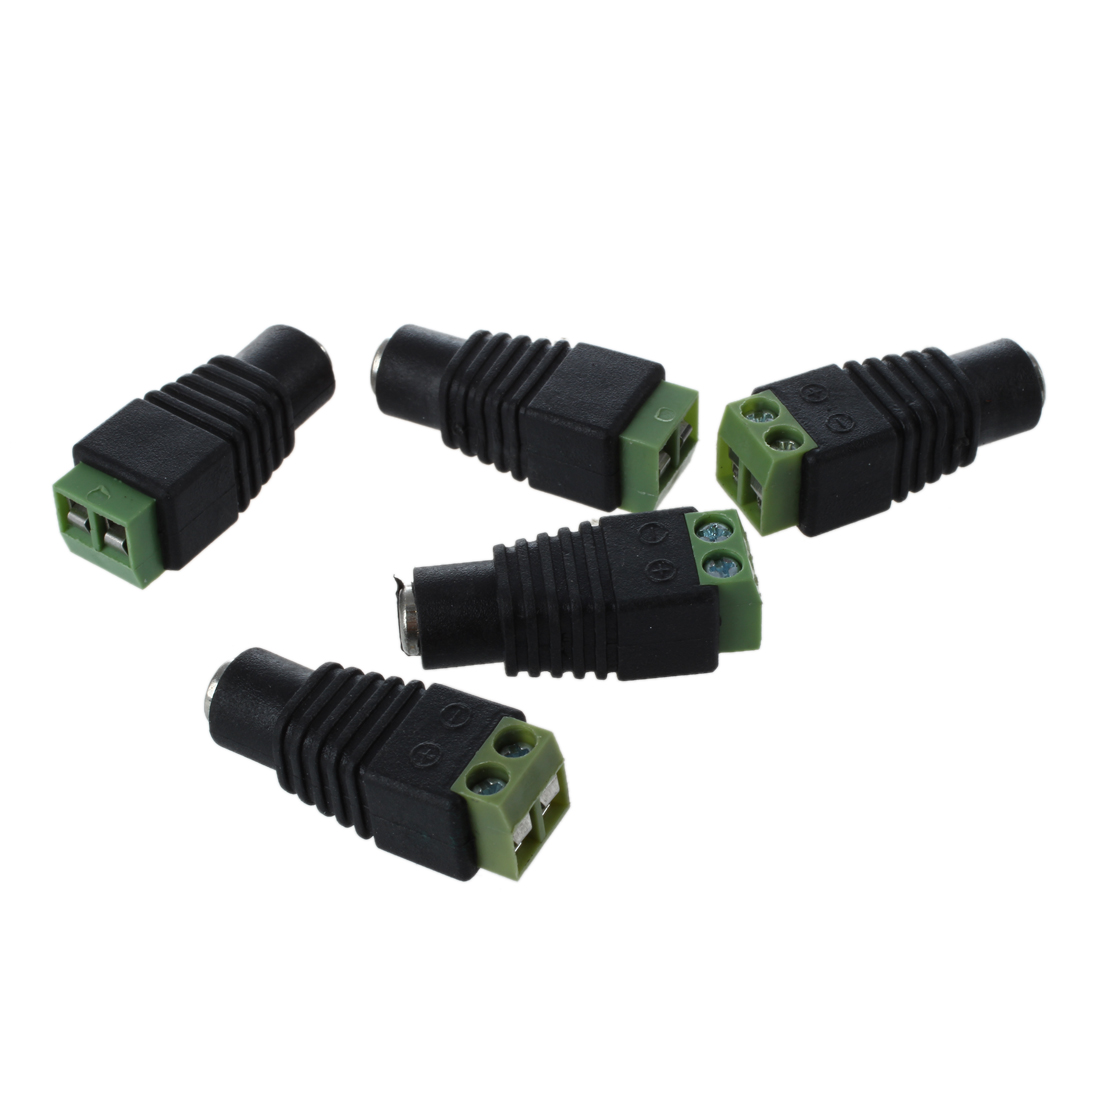 5X DC Power Female Jack 5.5X 2.1mm Connector Cable Adapter Plug CCTV DVR Camera ...